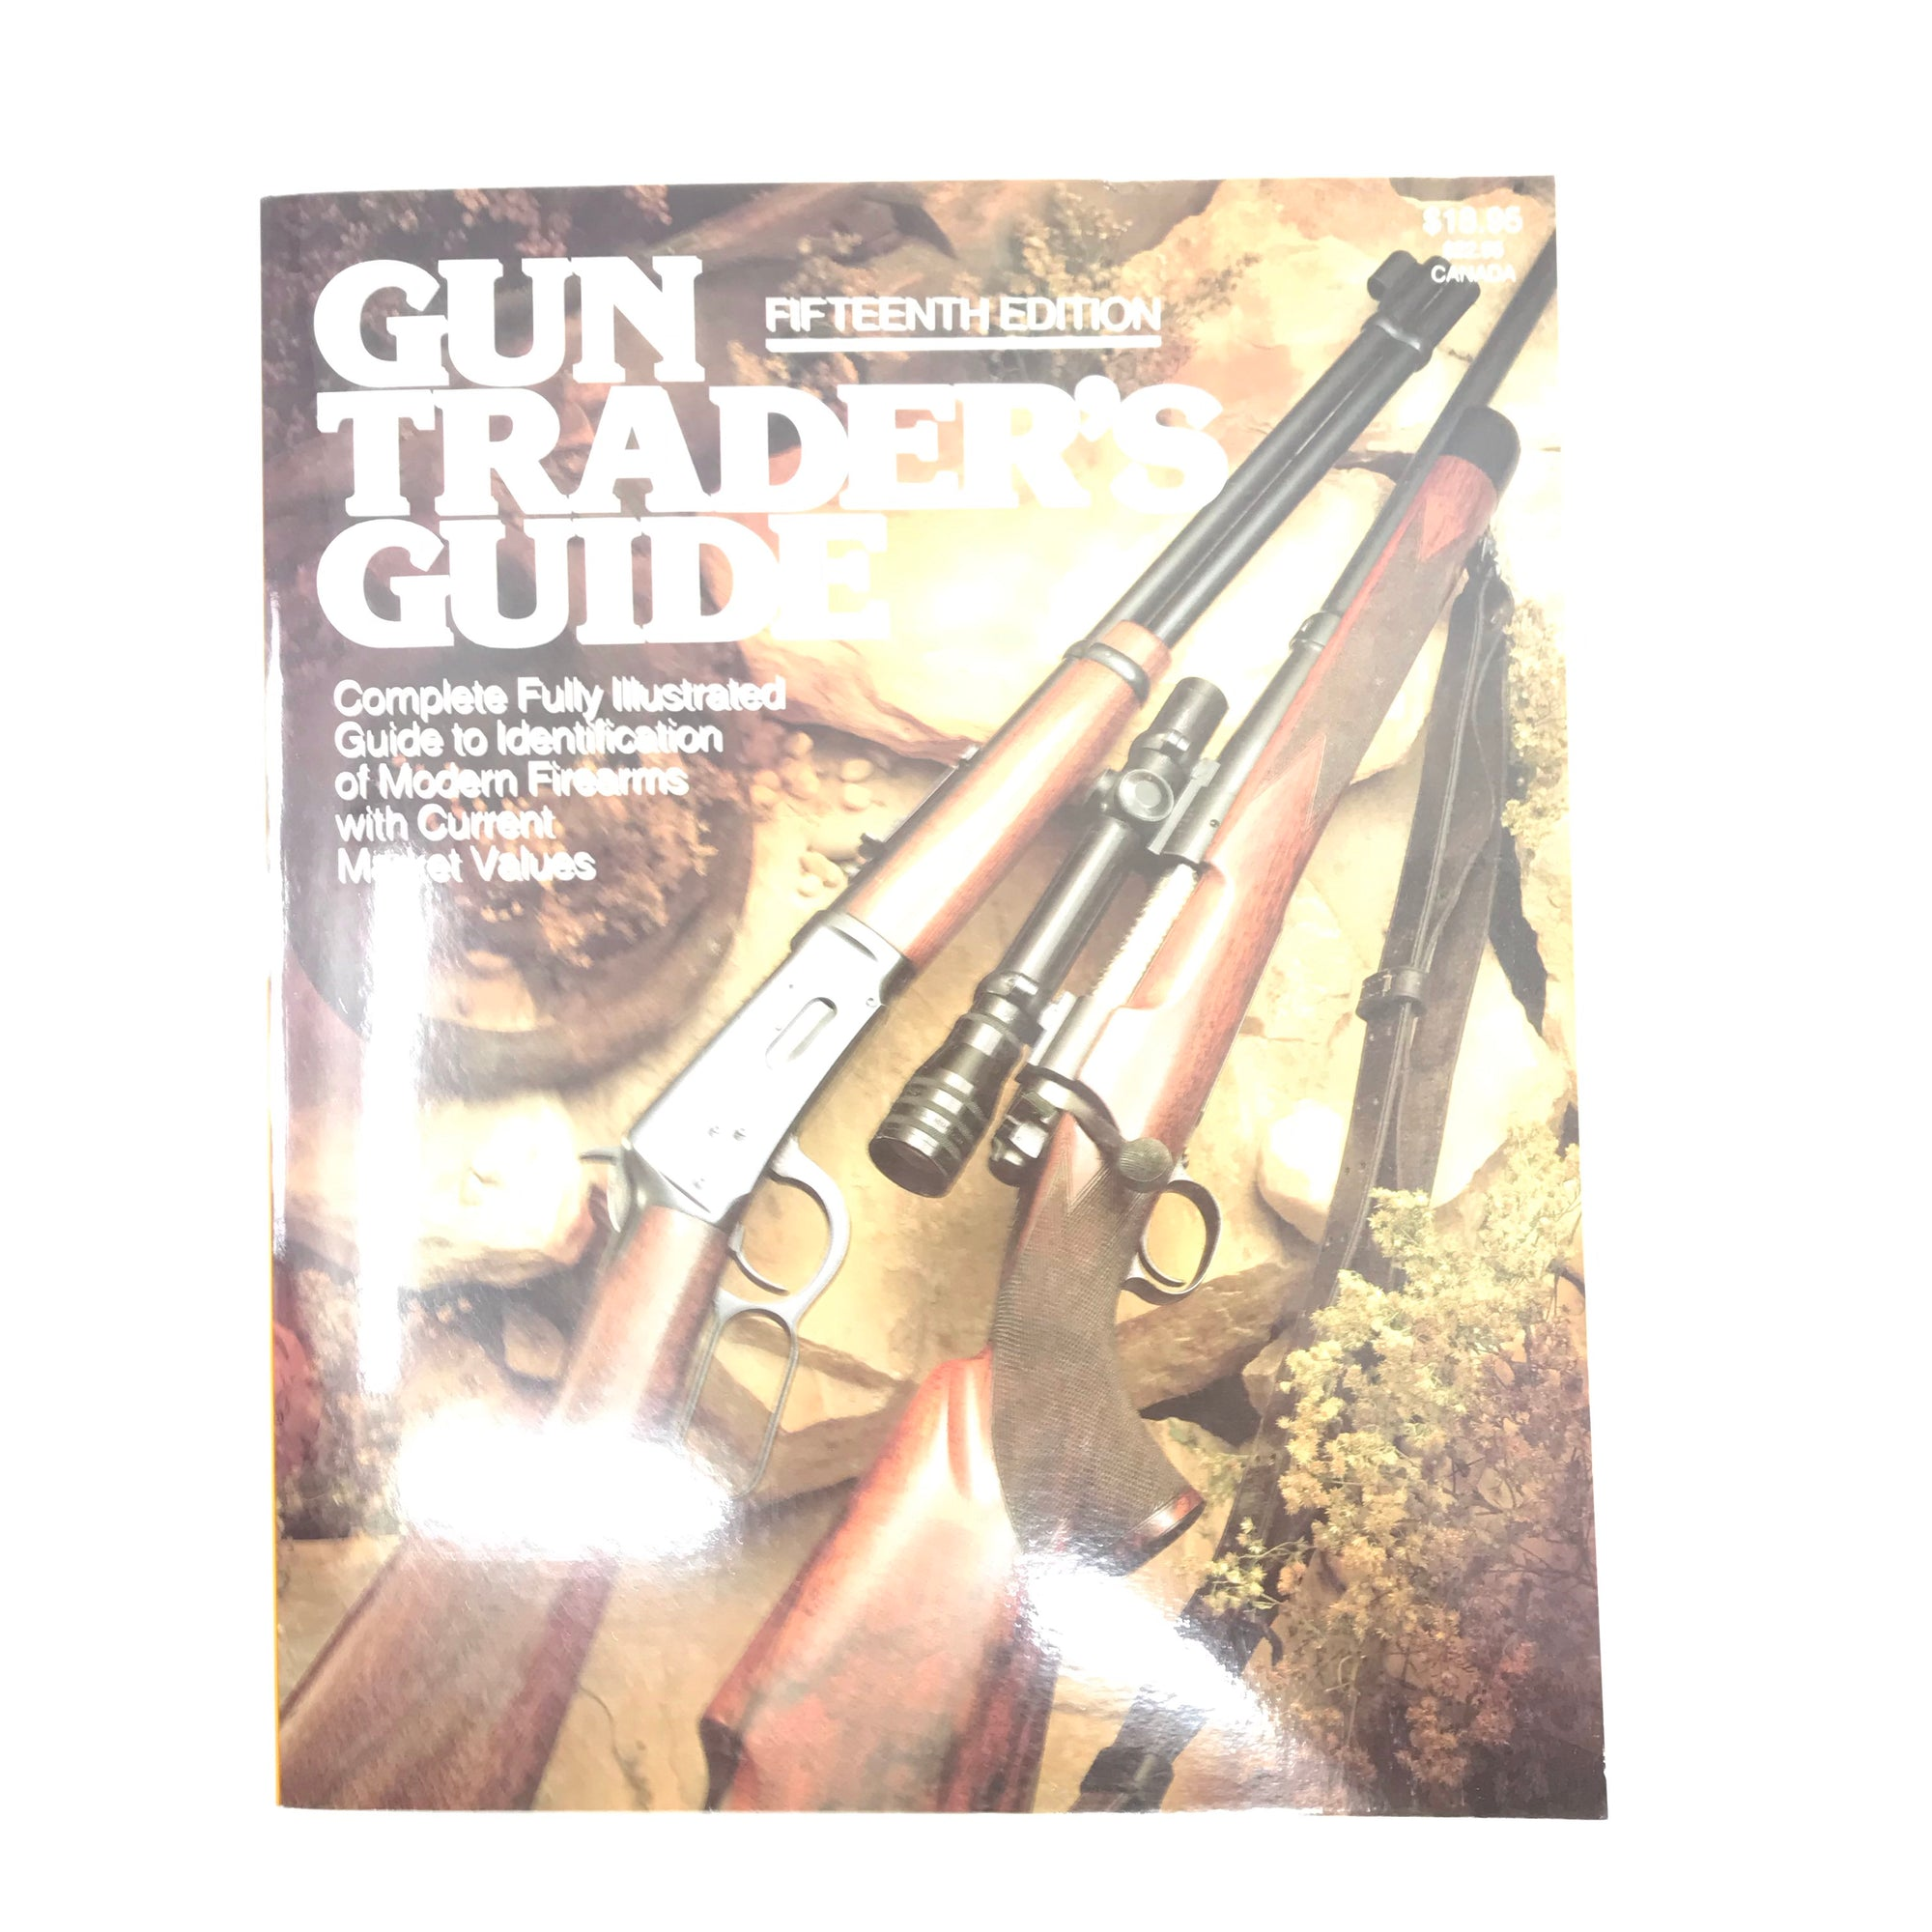 Gun Traders Guide 15th P. Wahl S.B. 525 Pgs